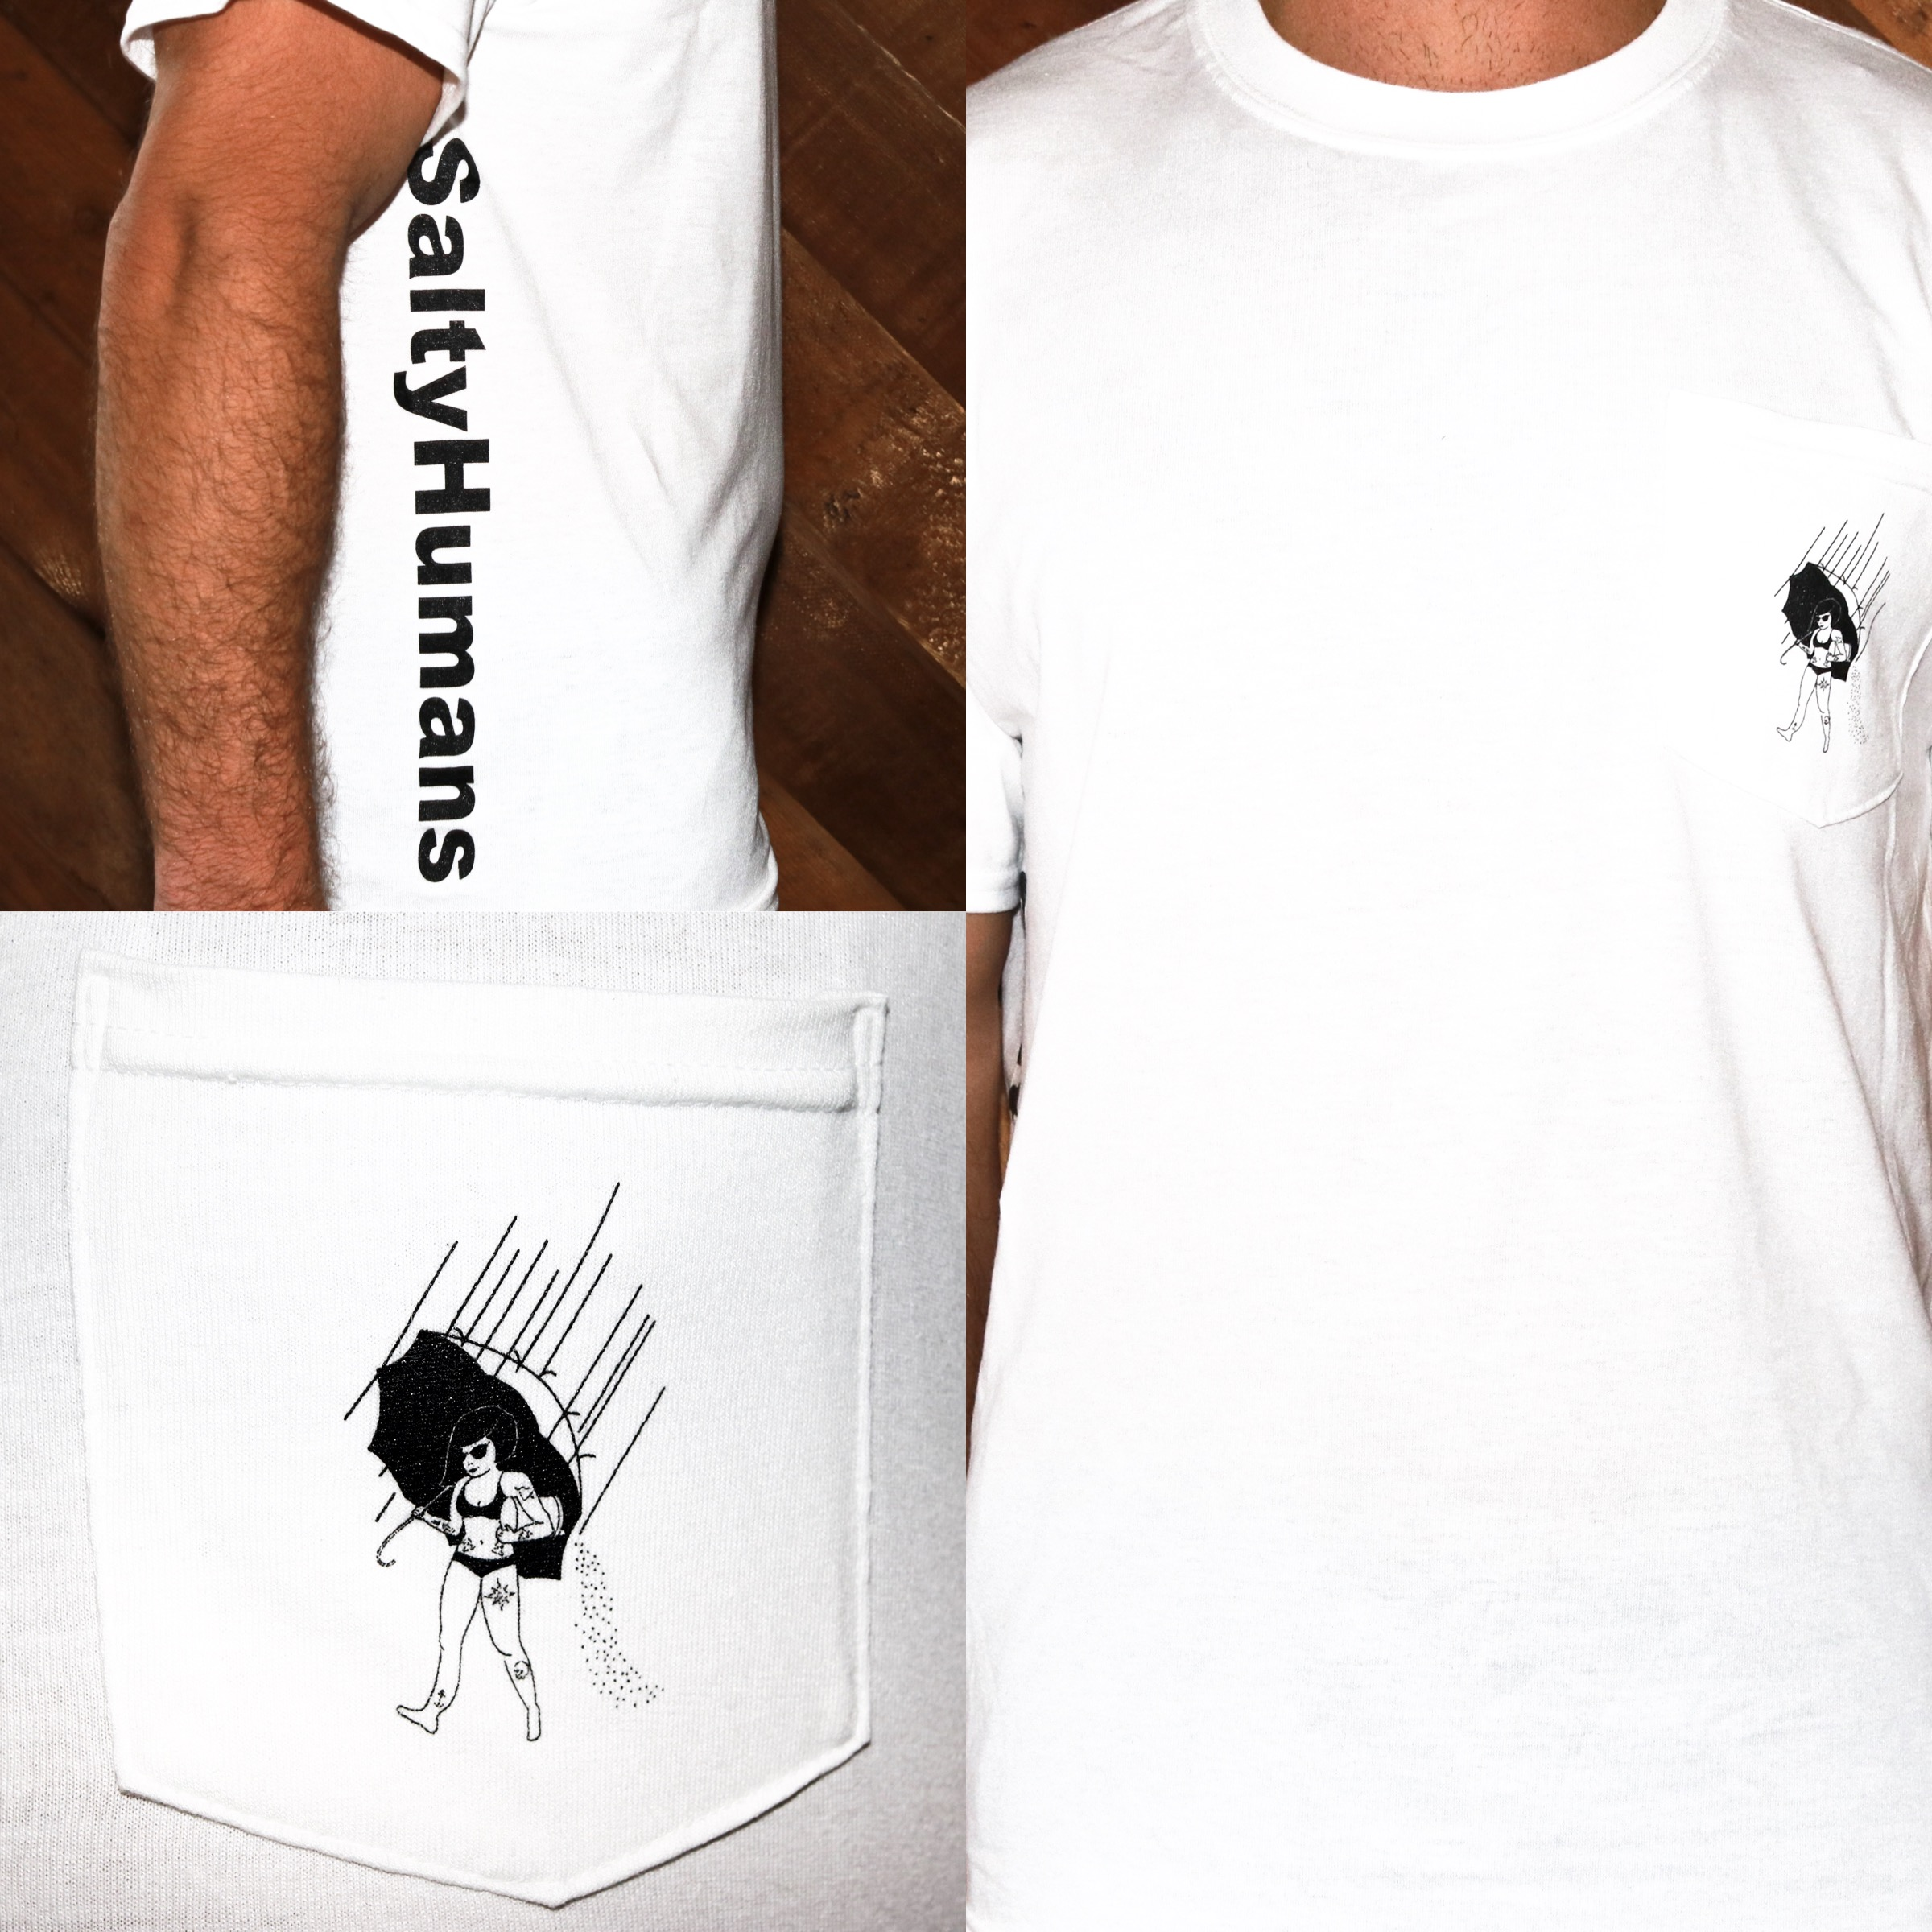 Pocket T's Available Now!